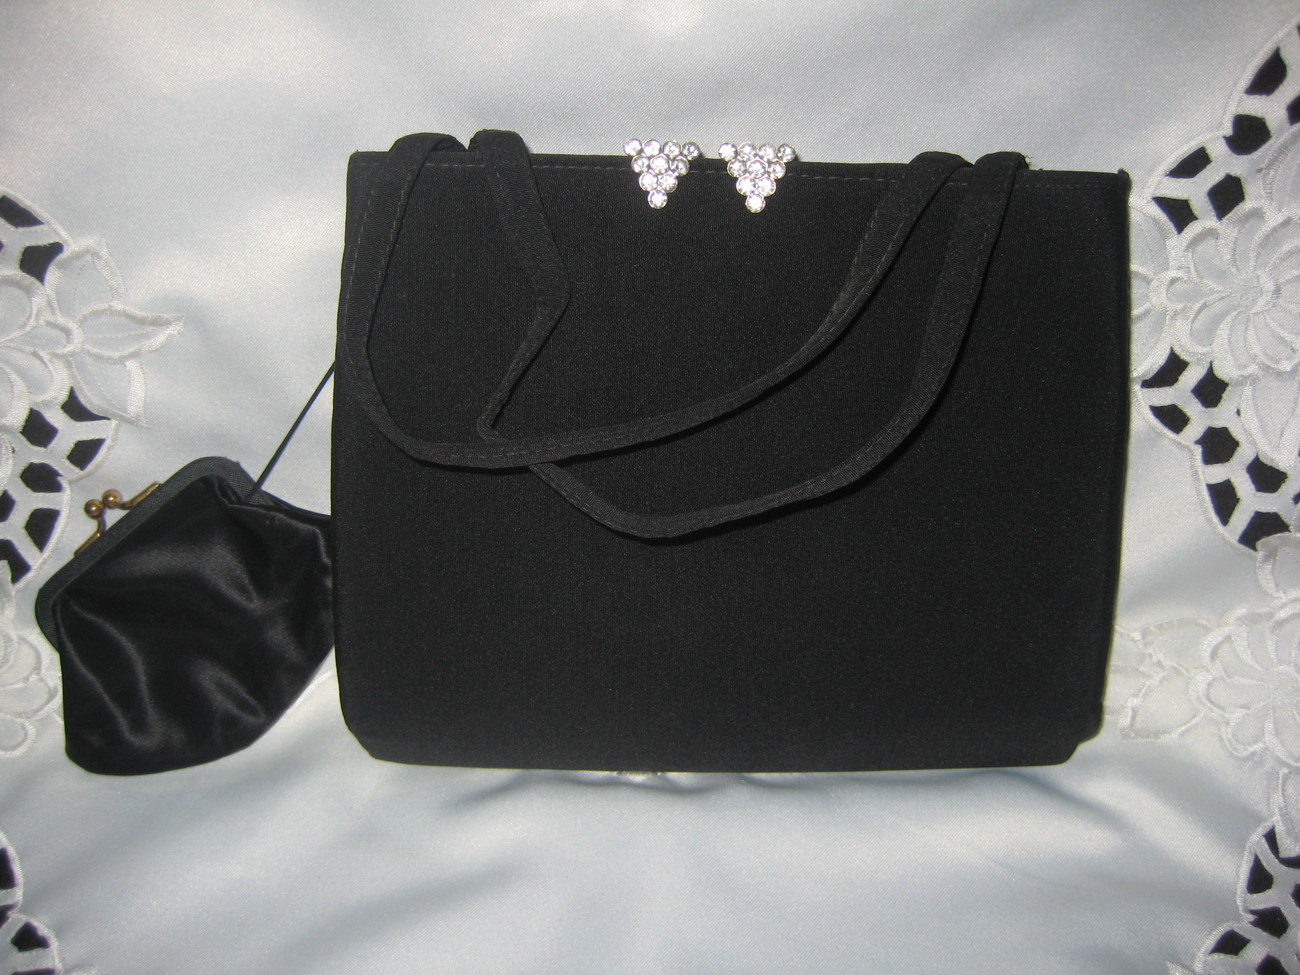 Primary image for Vintage Black evening bag with rhinestone accents